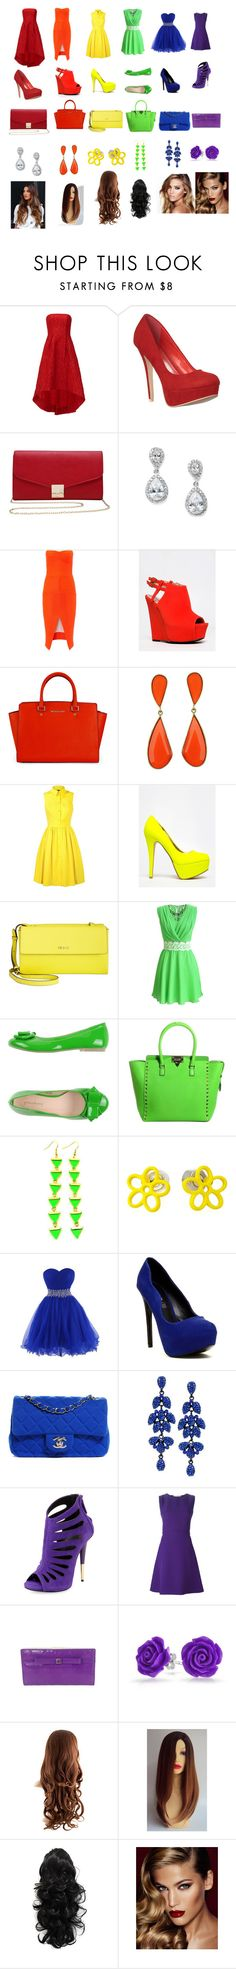 """""""Rainbow"""" by nyelawilson ❤ liked on Polyvore featuring ML Monique Lhuillier, M&Co, Maticevski, Qupid, Karen Millen, Anne Michelle, DKNY, PrimaDonna, Valentino and Marc by Marc Jacobs"""